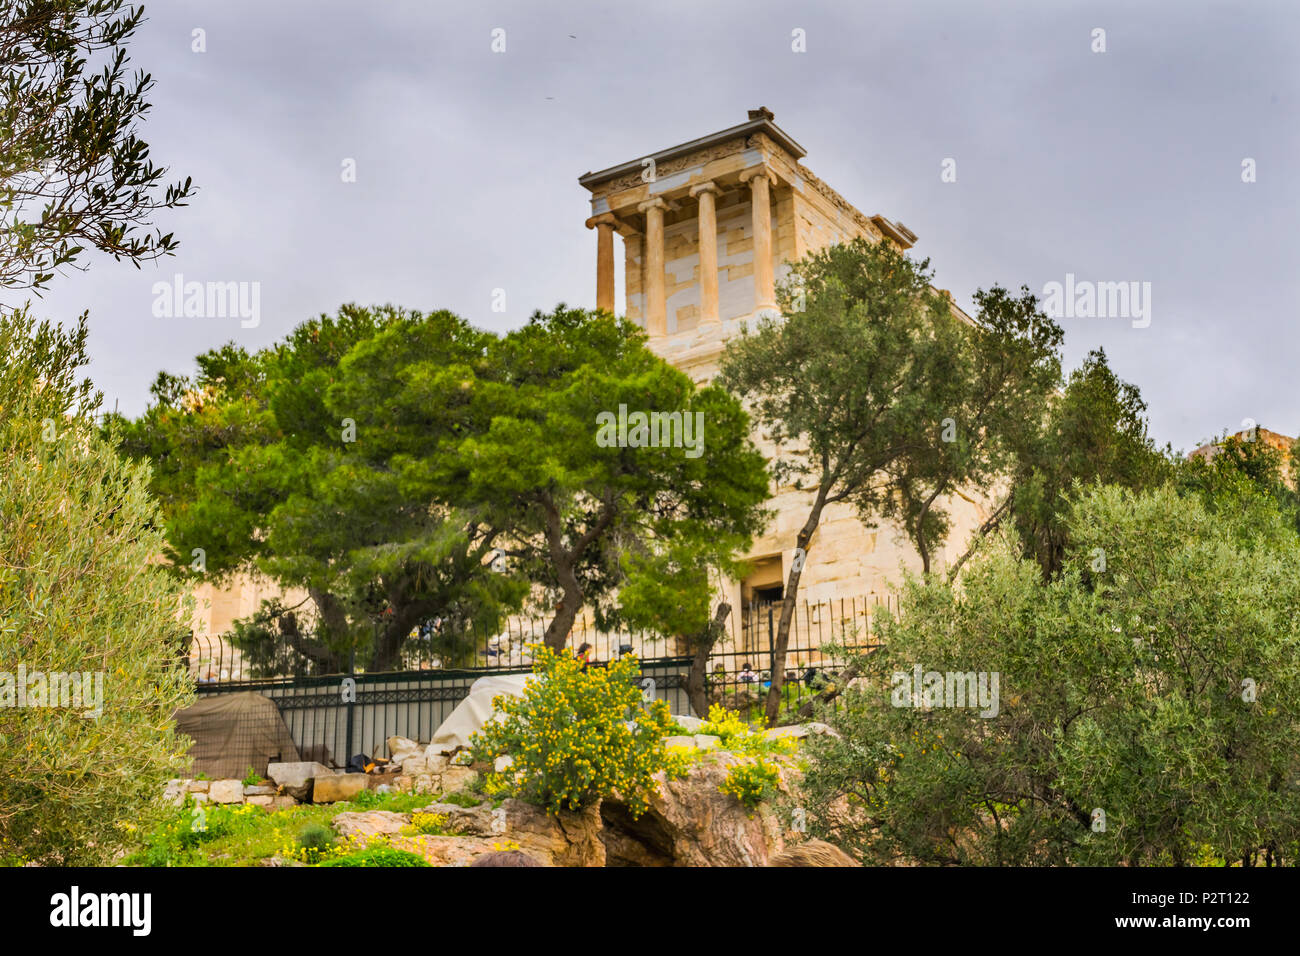 Olive Trees Temple of Athena Nike Propylaea Ancient Entrance Gateway Ruins Acropolis Athens Greece Construction ended in 432 BC Temple built 420 BC.   - Stock Image